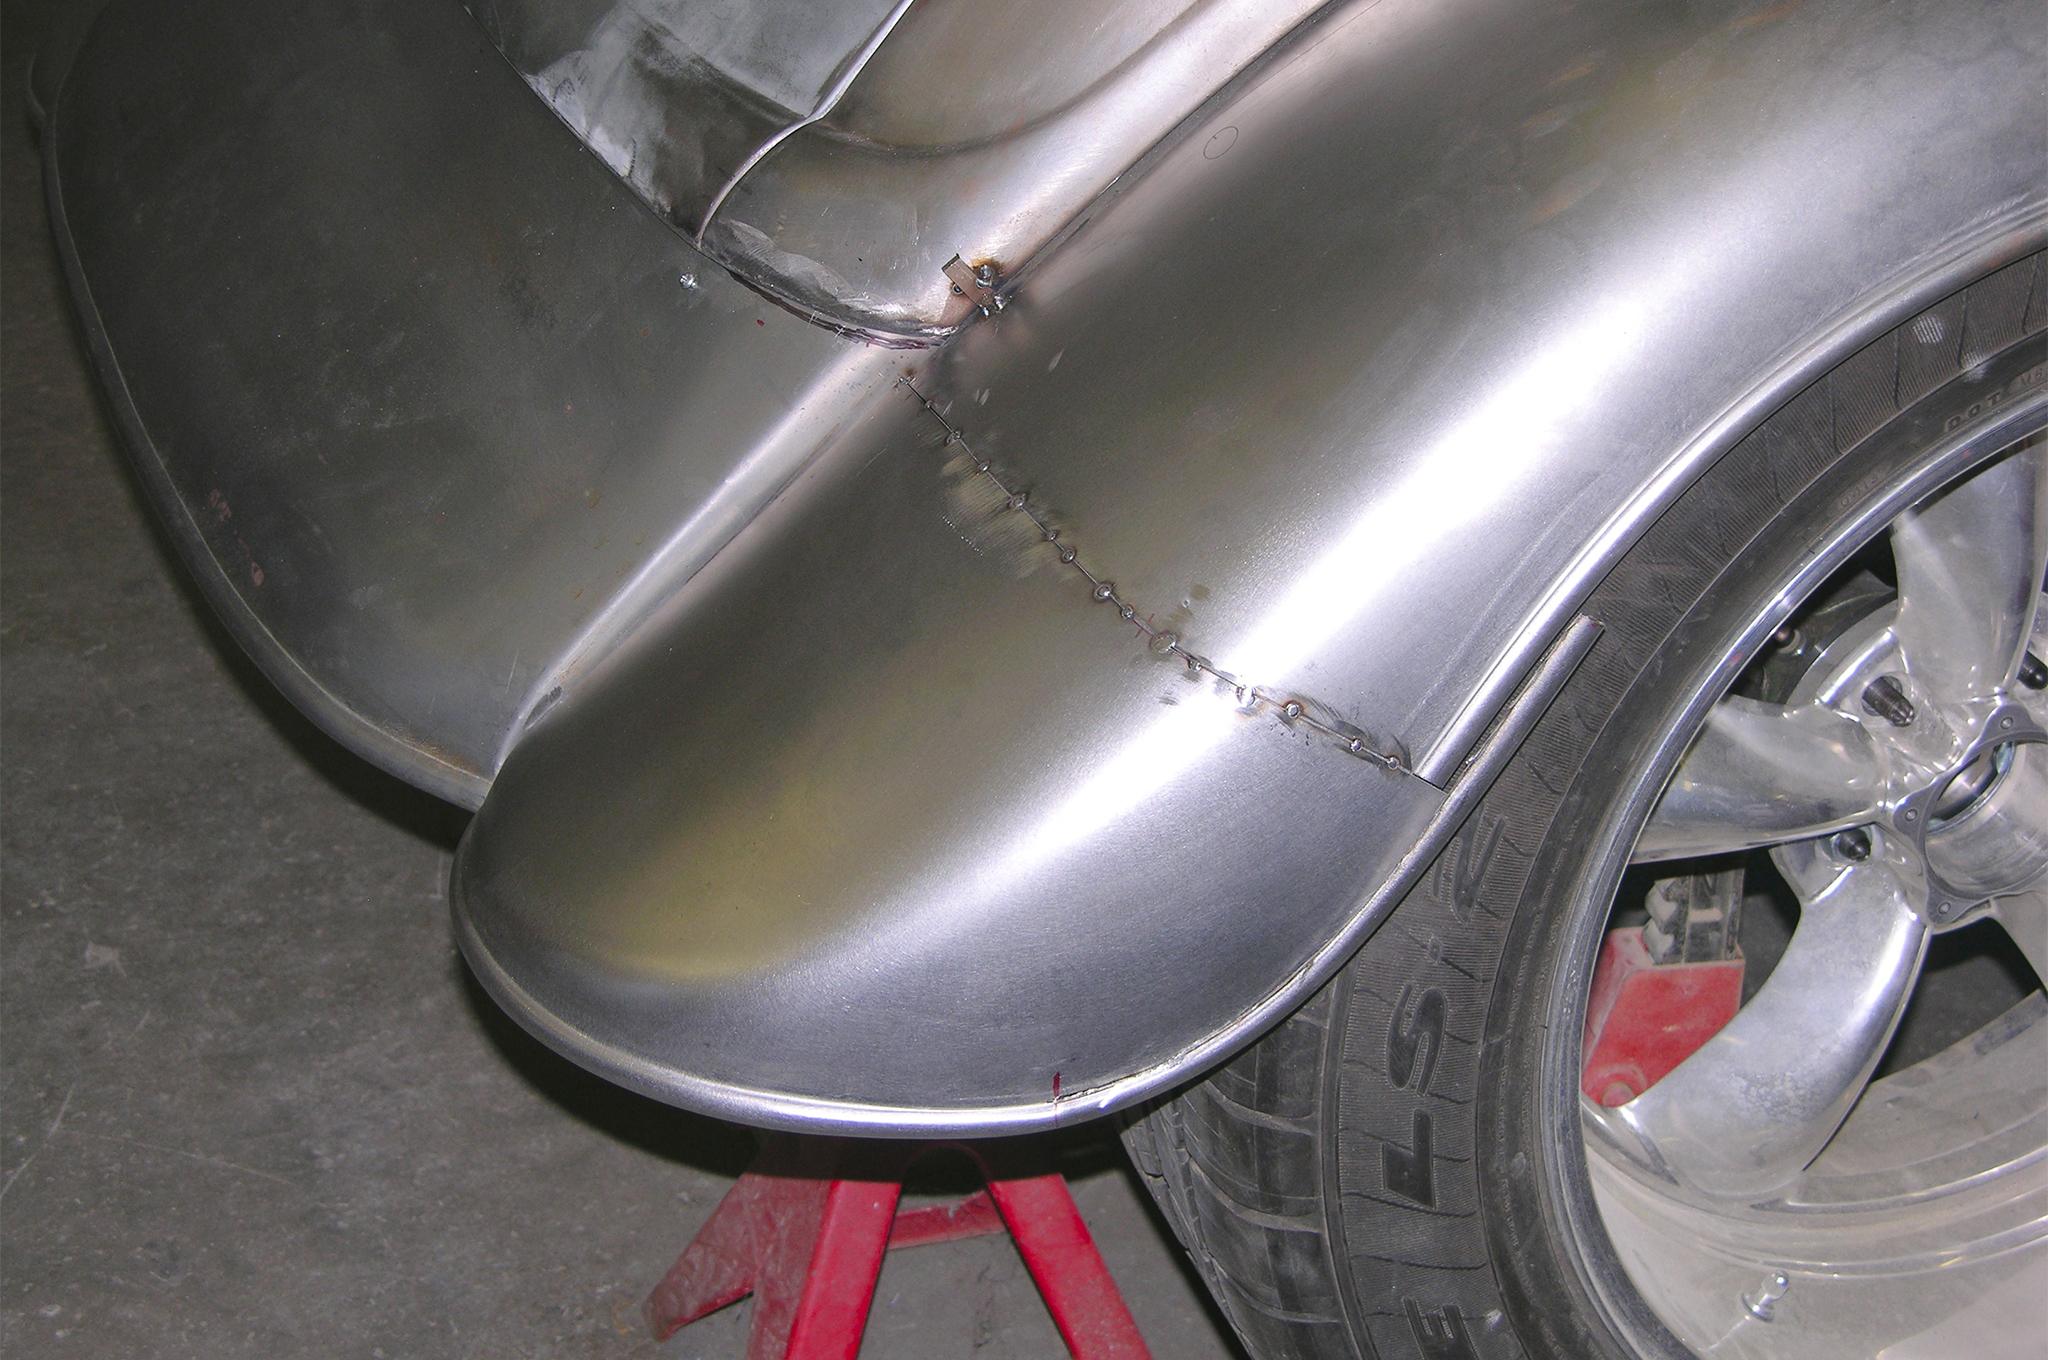 Sheetmetal modifications also take place at the rear. Here Alloway shortens the tail pan, which covers a stock gas tank and rear fenders. But they also need to align the bead roll in the fenders, as they no longer line up.